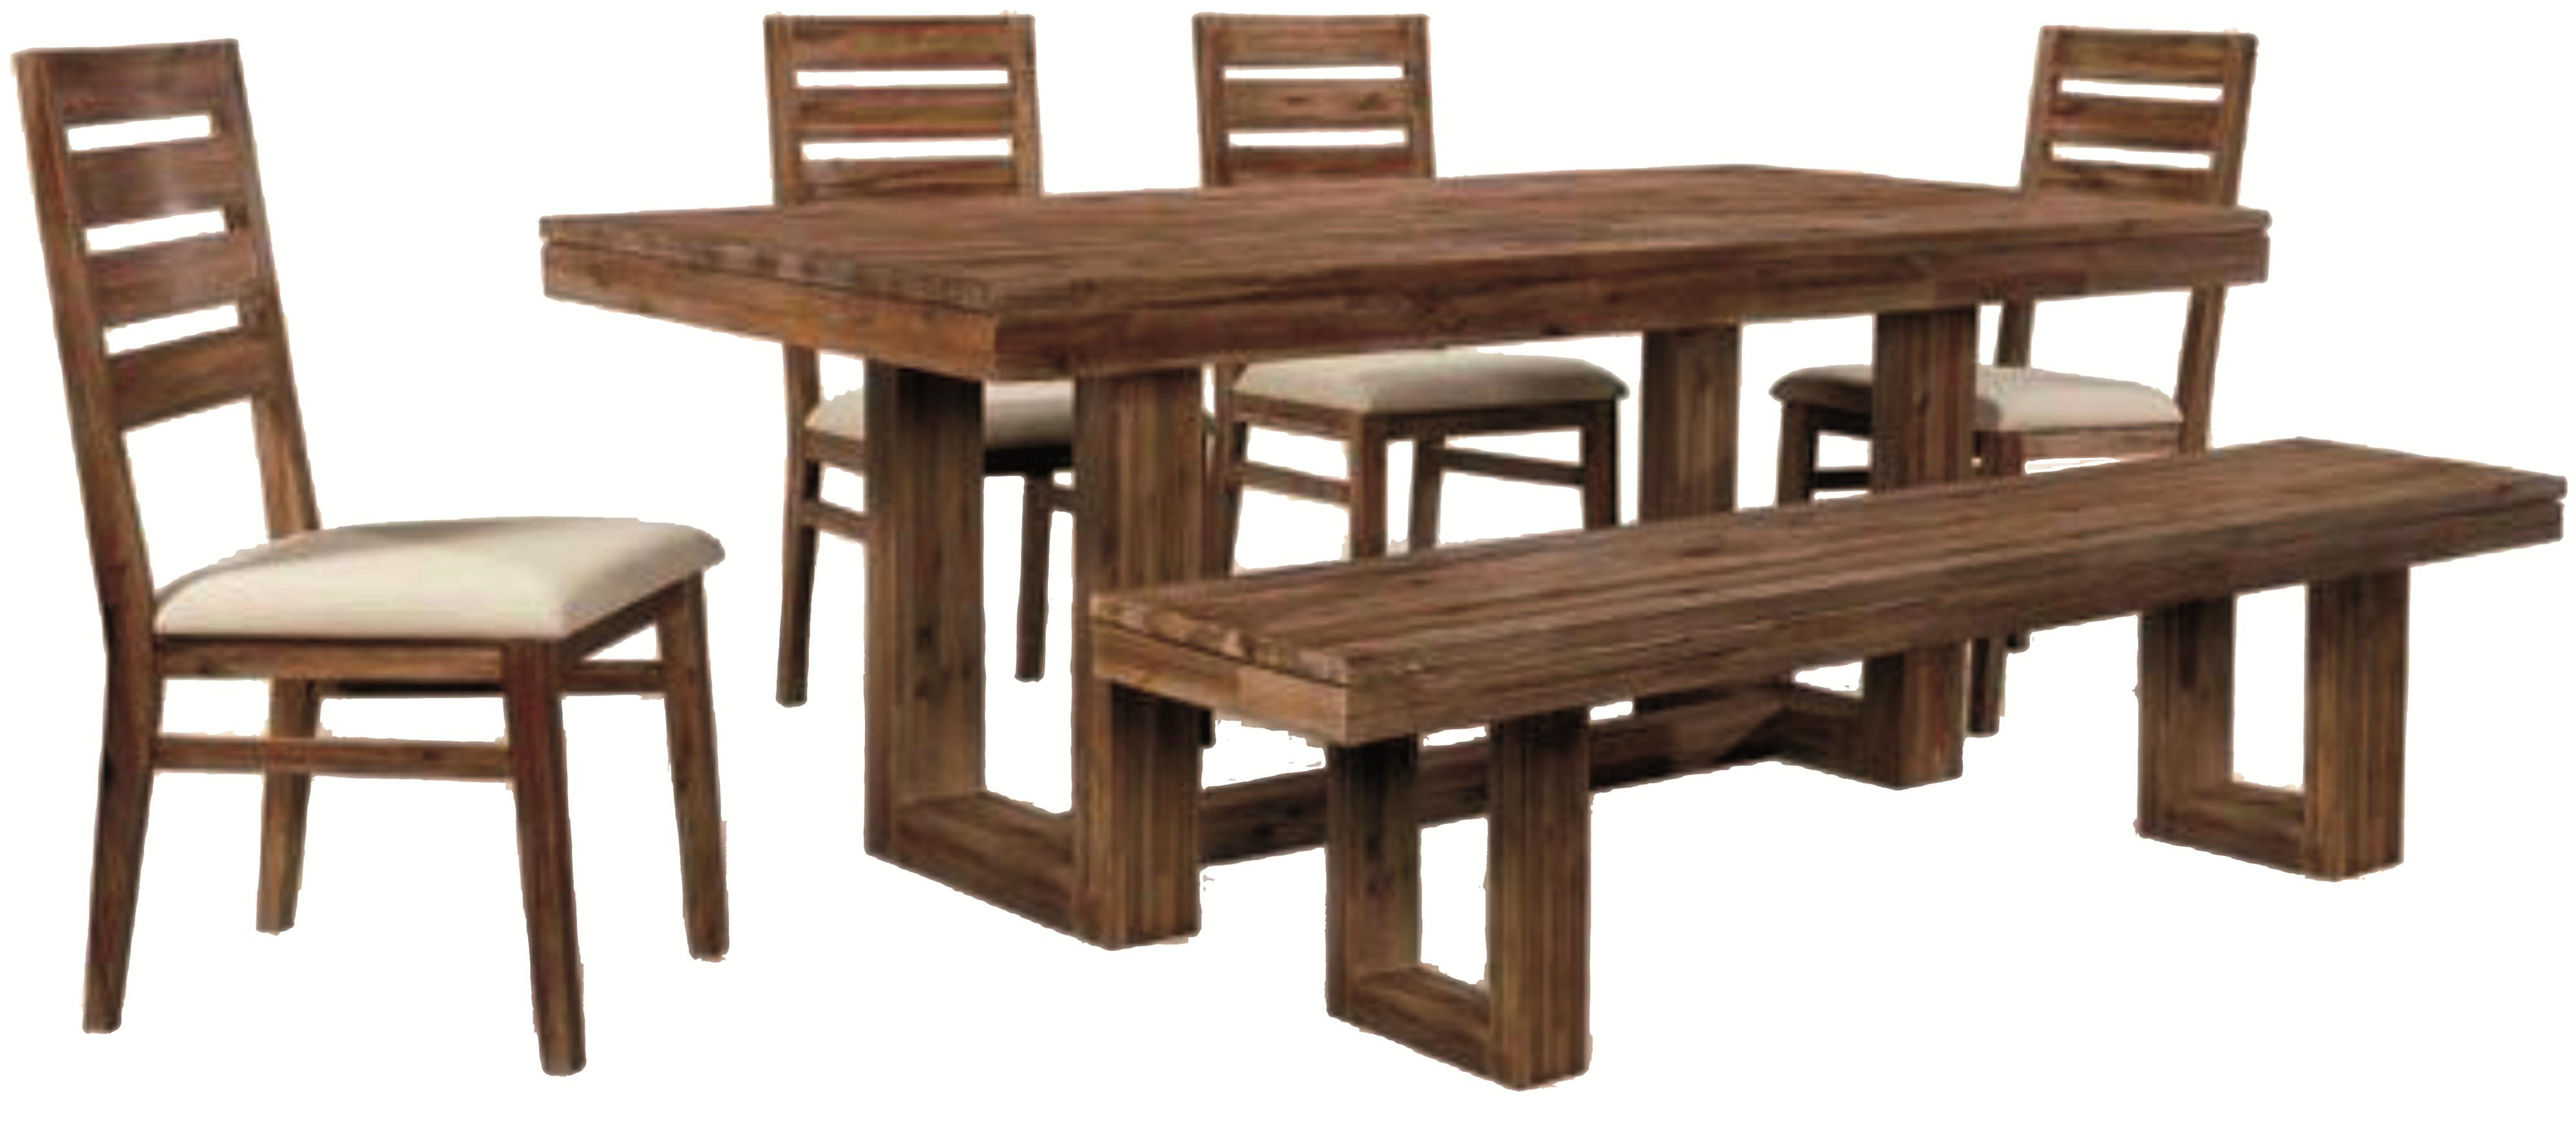 Six piece modern rustic rectangular trestle table with for Dinette sets with bench seating